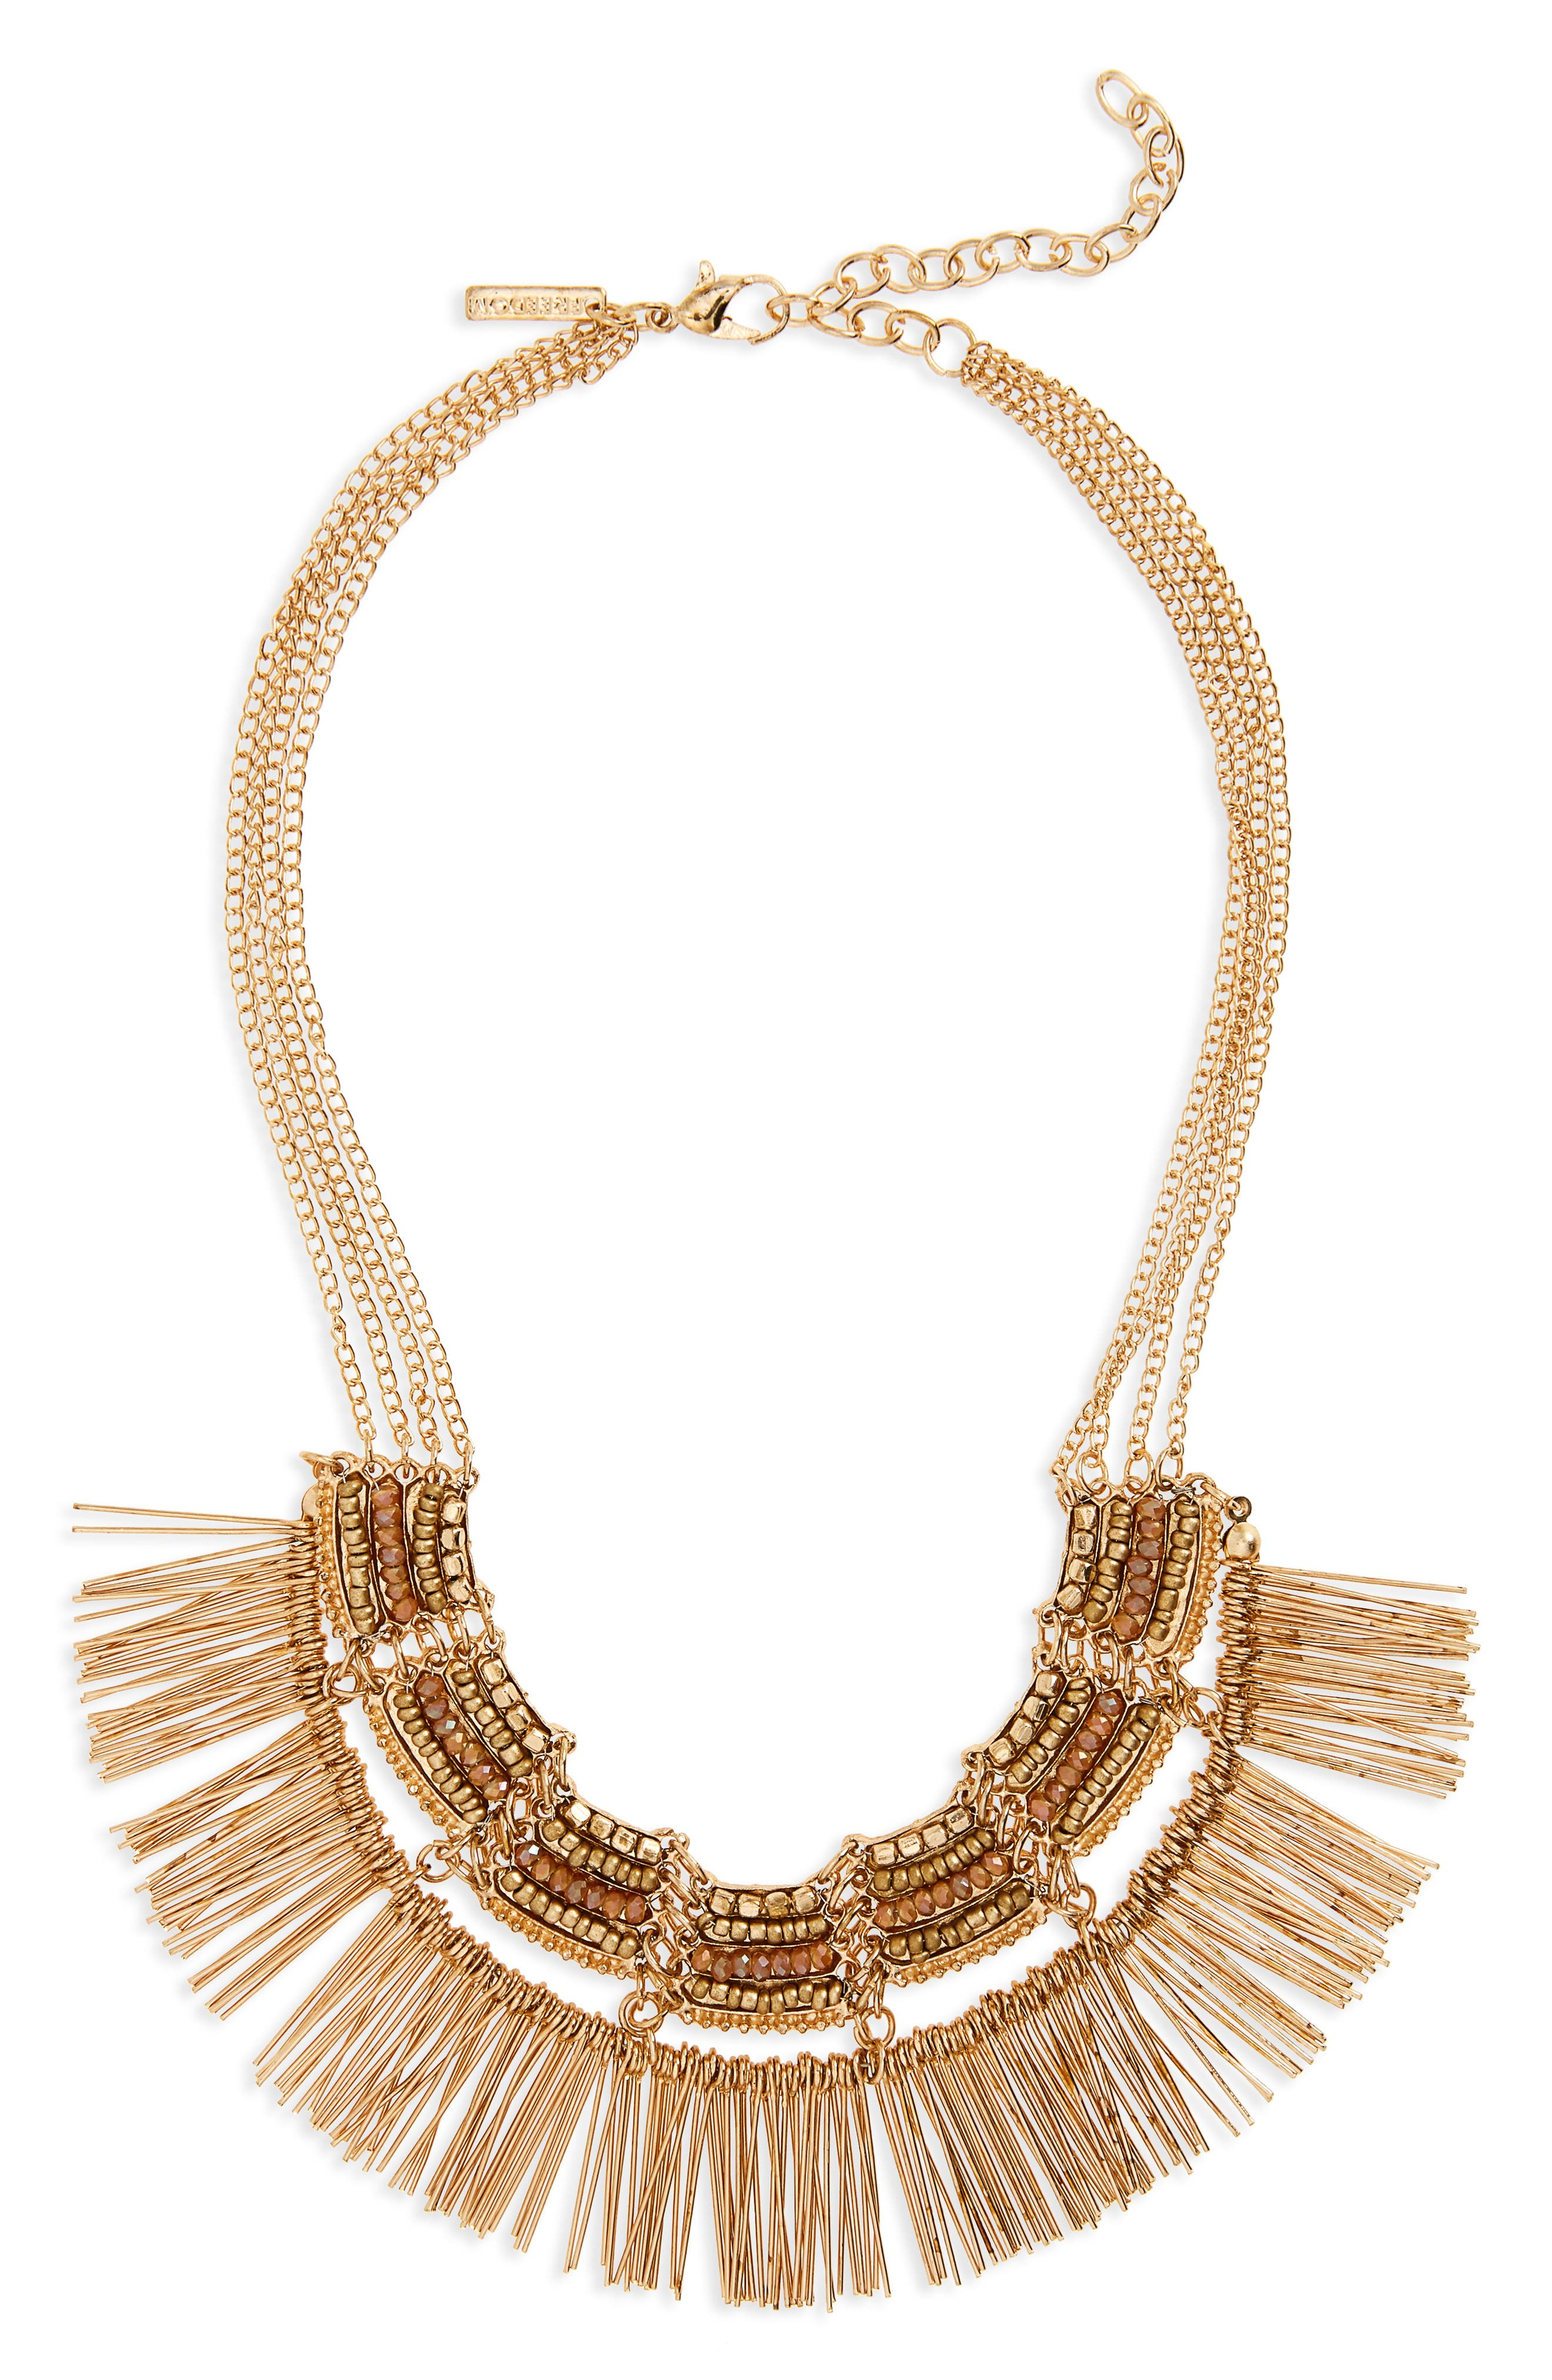 Topshop Beaded Fringe Collar Necklace